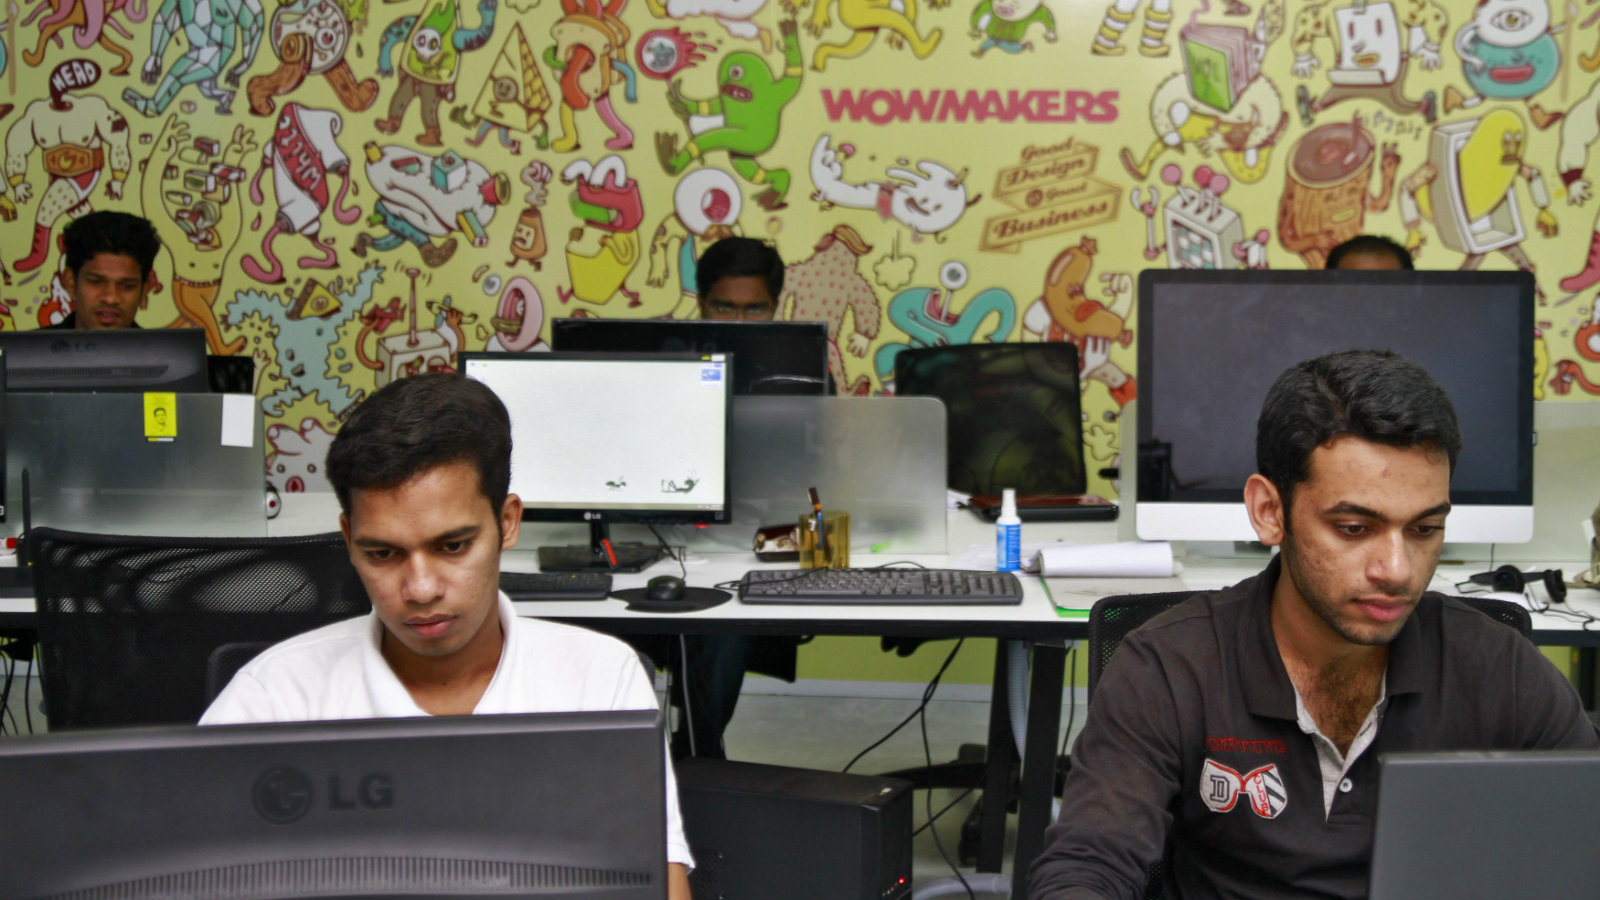 Design artists work on their computer terminals at the Start-up Village in Kinfra High Tech Park in the southern Indian city of Kochi October 13, 2012. Three decades after Infosys, India's second-largest software service provider, was founded by middle-class engineers, the country has failed to create an enabling environment for first-generation entrepreneurs. Startup Village wants to break the logjam by helping engineers develop 1,000 Internet and mobile companies in the next 10 years. It provides its members with office space, guidance and a chance to hobnob with the stars of the tech industry. But critics say this may not even be the beginning of a game-changer unless India deals with a host of other impediments - from red tape to a lack of innovation and a dearth of investors - that are blocking entrepreneurship in Asia's third-largest economy. To match Feature INDIA-TECHVILLAGE/ Picture taken October 13, 2012.